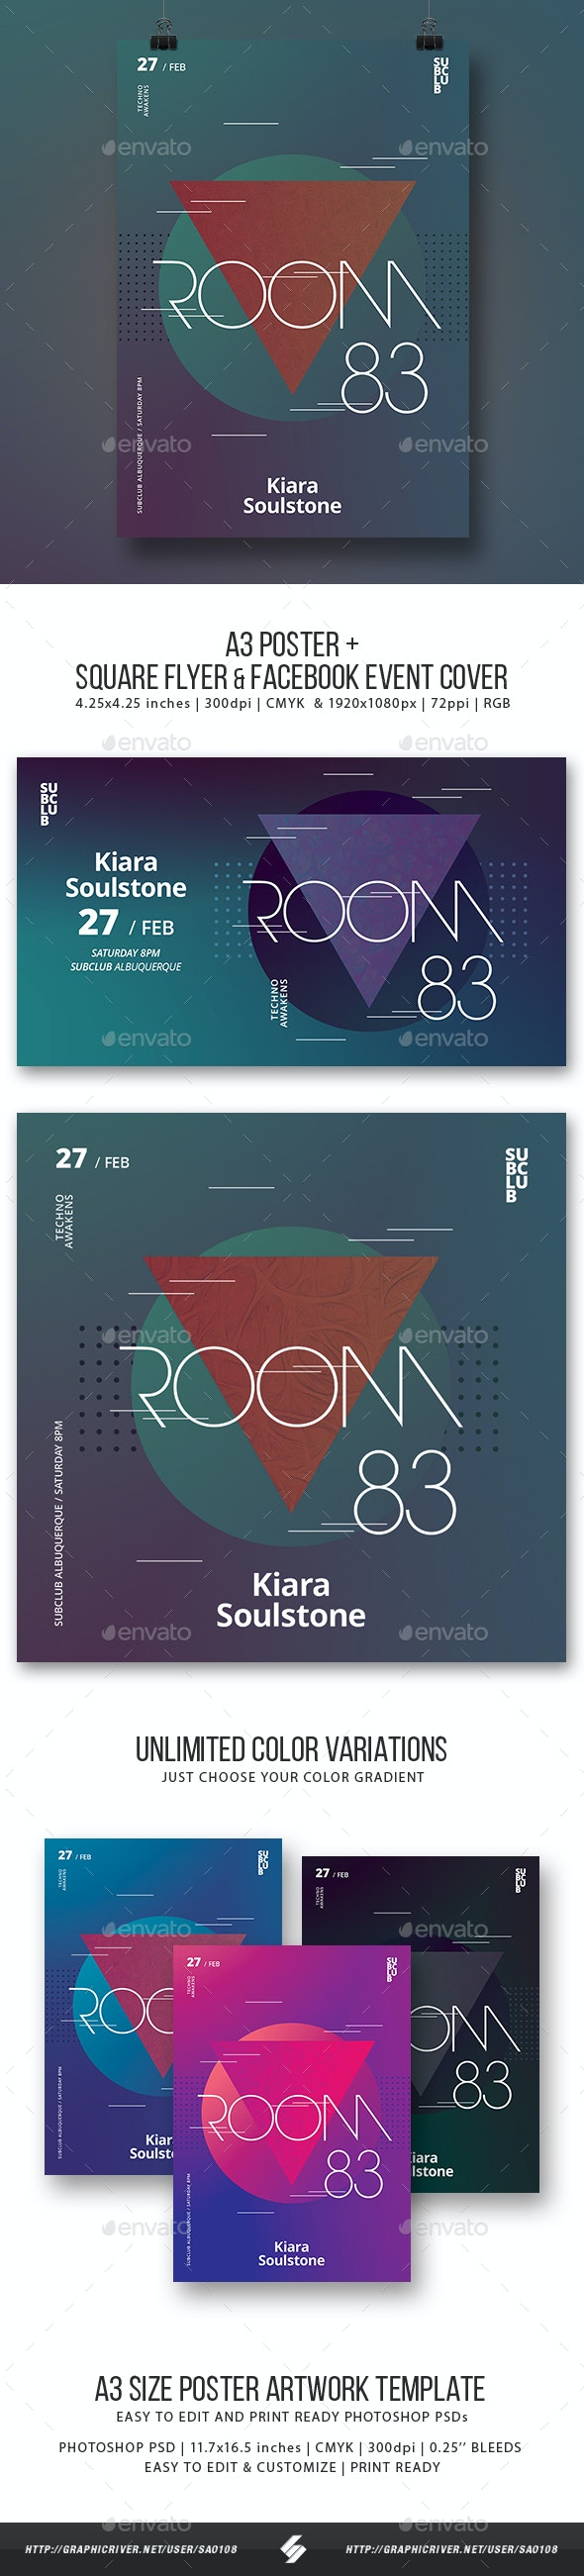 Room 83 - Minimal Party Flyer / Poster Artwork Template A3 - Clubs & Parties Events